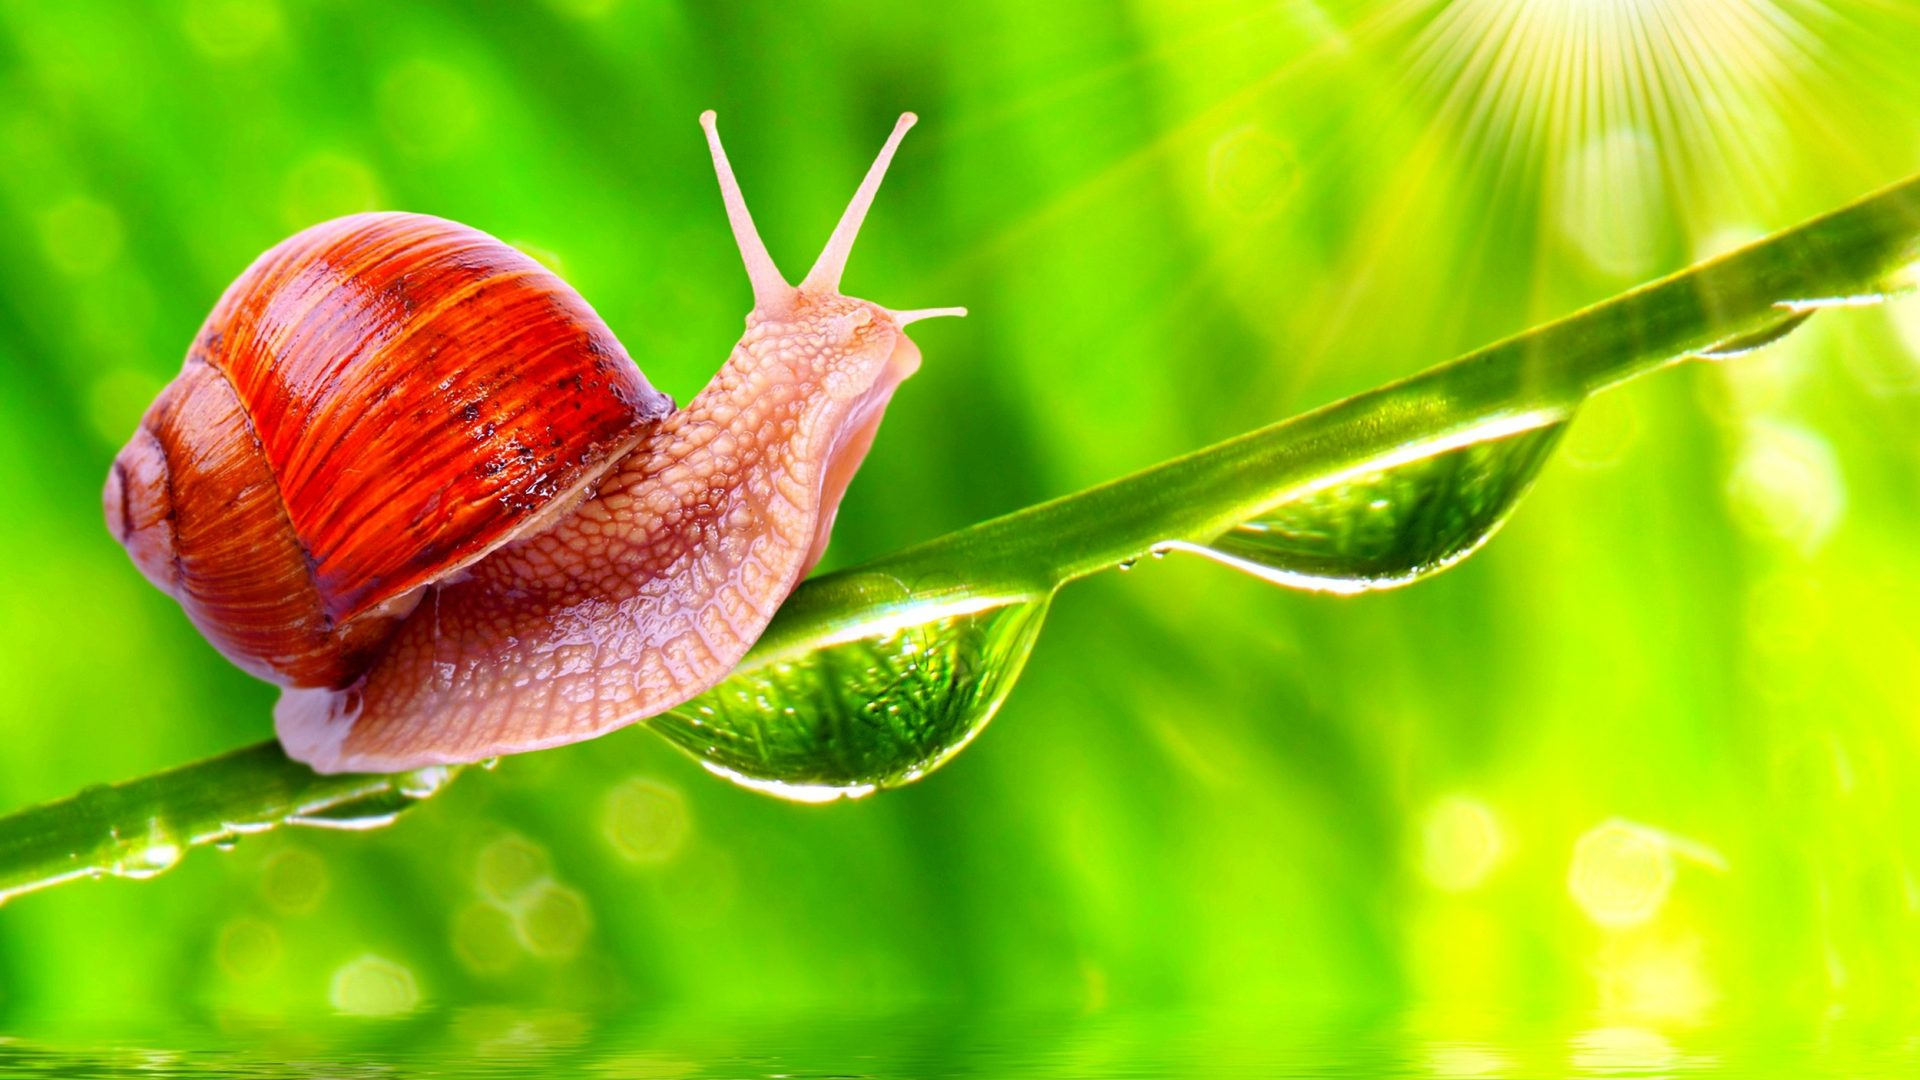 Misc: Green Snail Water Time Grass Reflection Drops Nature Sunshine ...